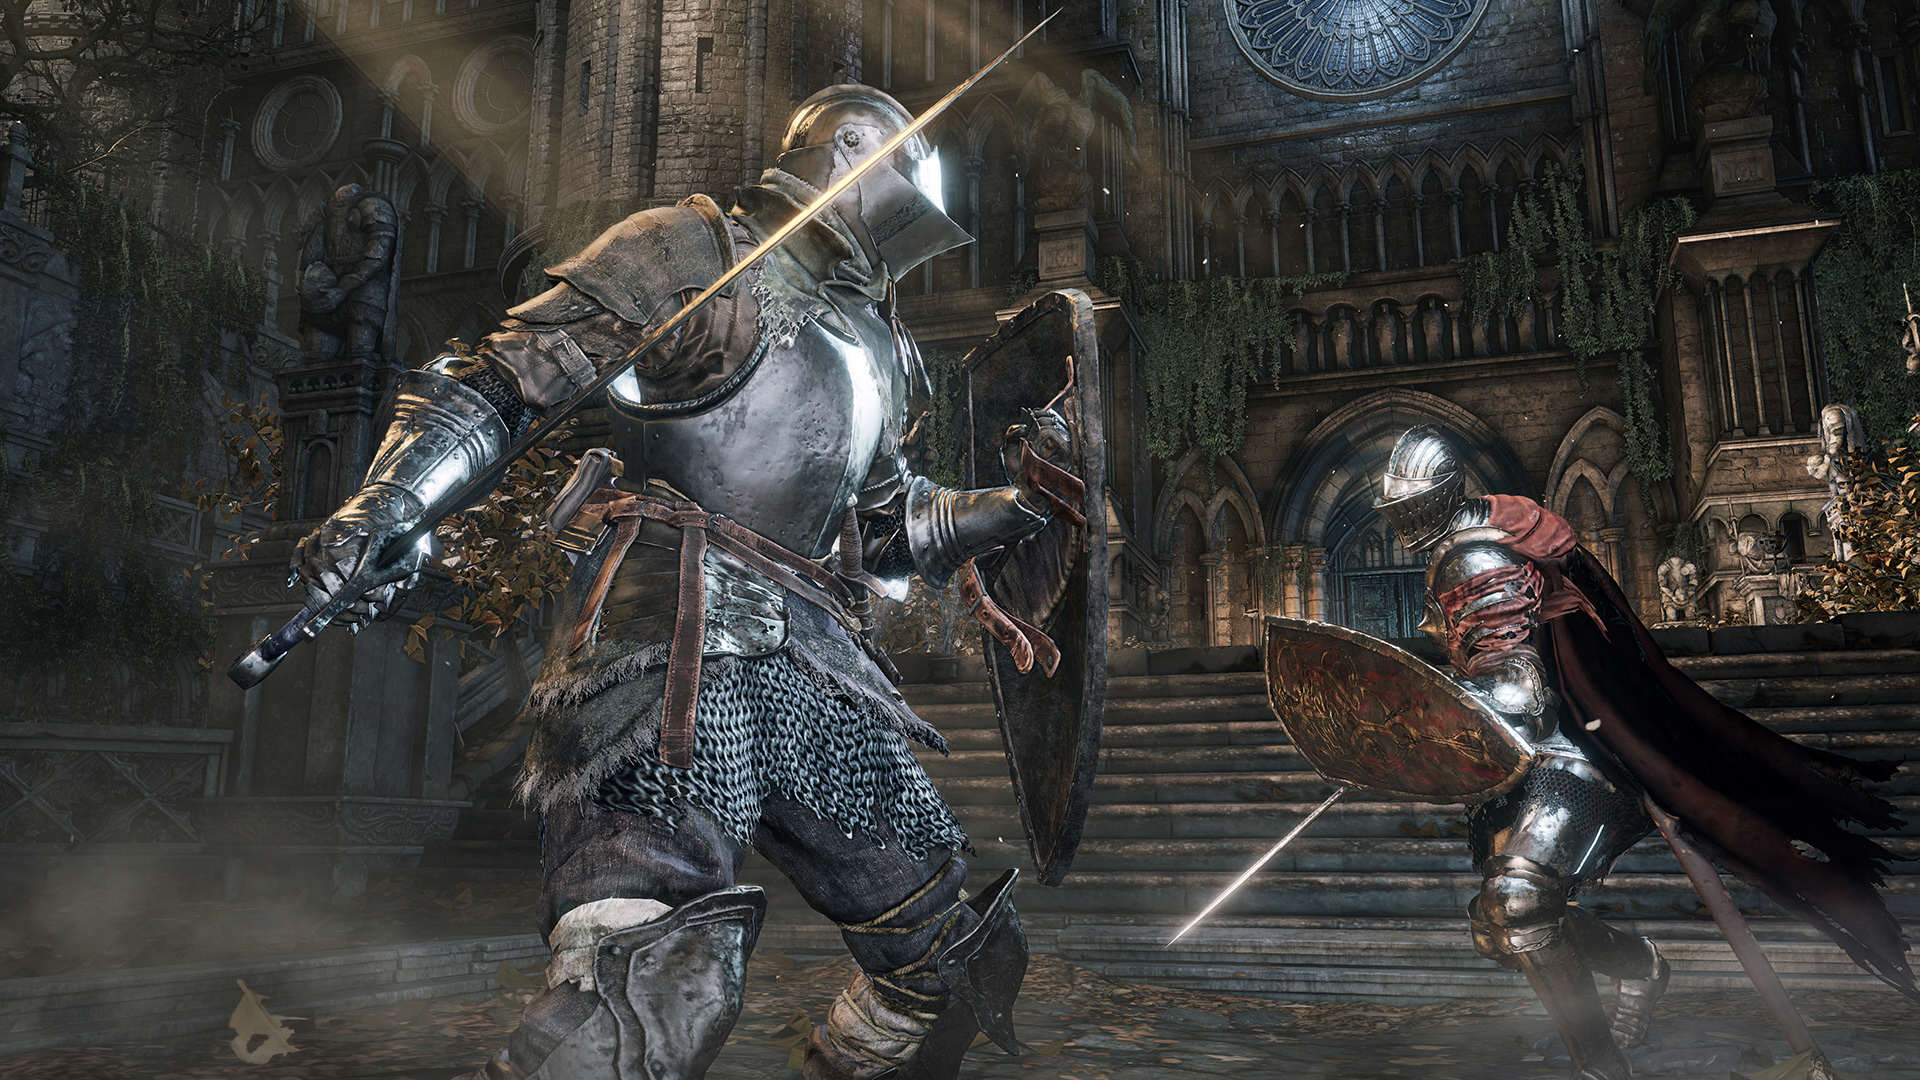 wbcvk9x71qeujtxqdgdg Guy Beats All Dark Souls 3 Bosses Without Taking A Hit